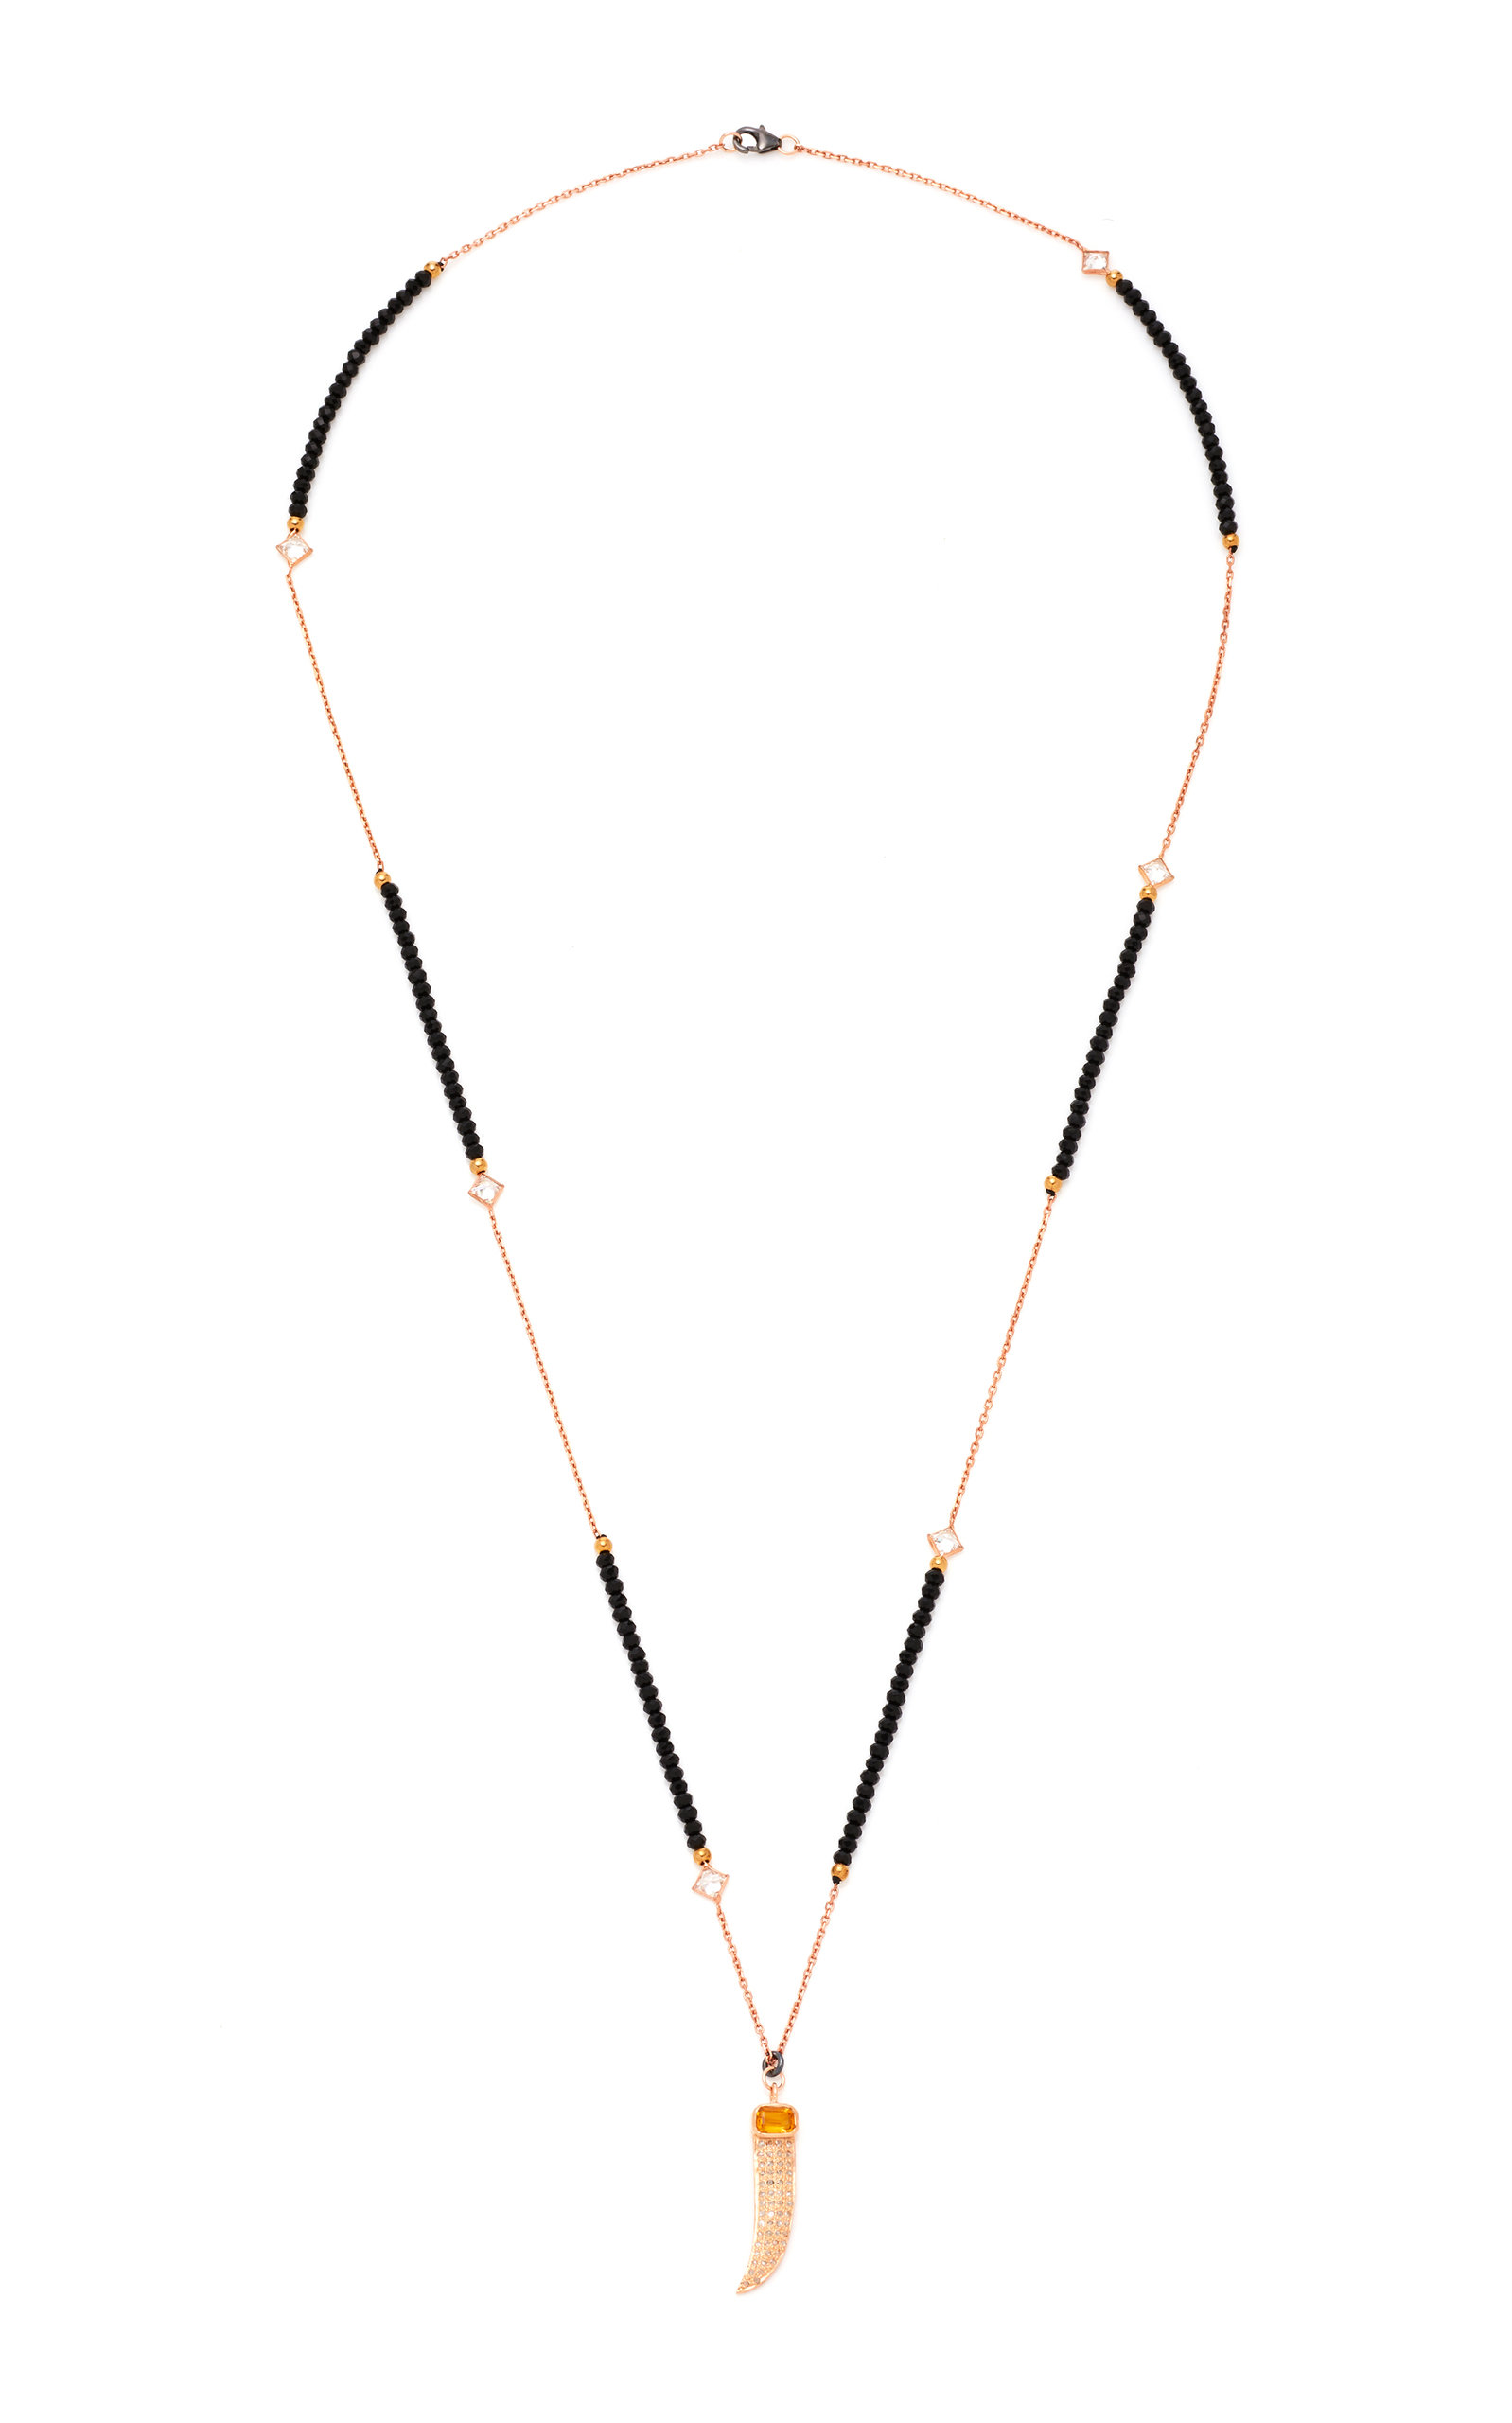 NICKHO REY CLAW 14K ROSE GOLD DIAMOND AND CITRINE NECKLACE